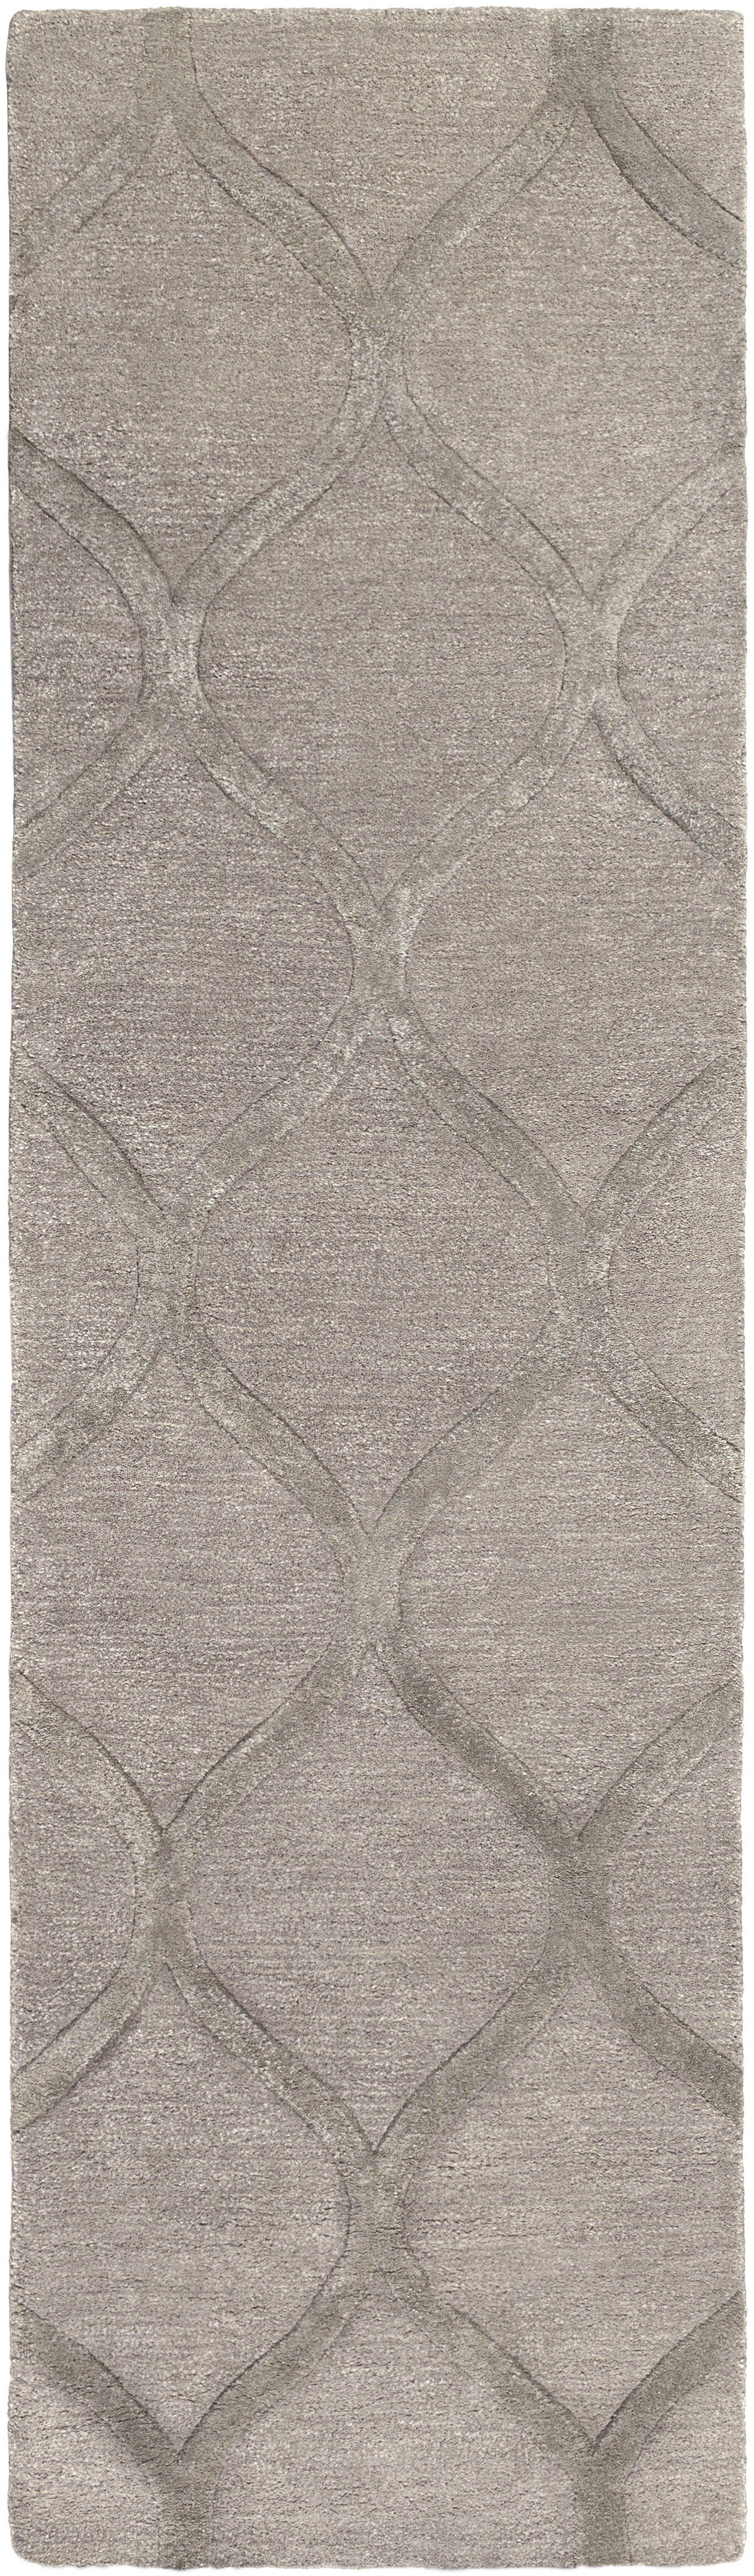 fresh inspirational improvement sofia distressed grey photos x rug rugs safavieh beige of viscose light graphics oriental vintage home